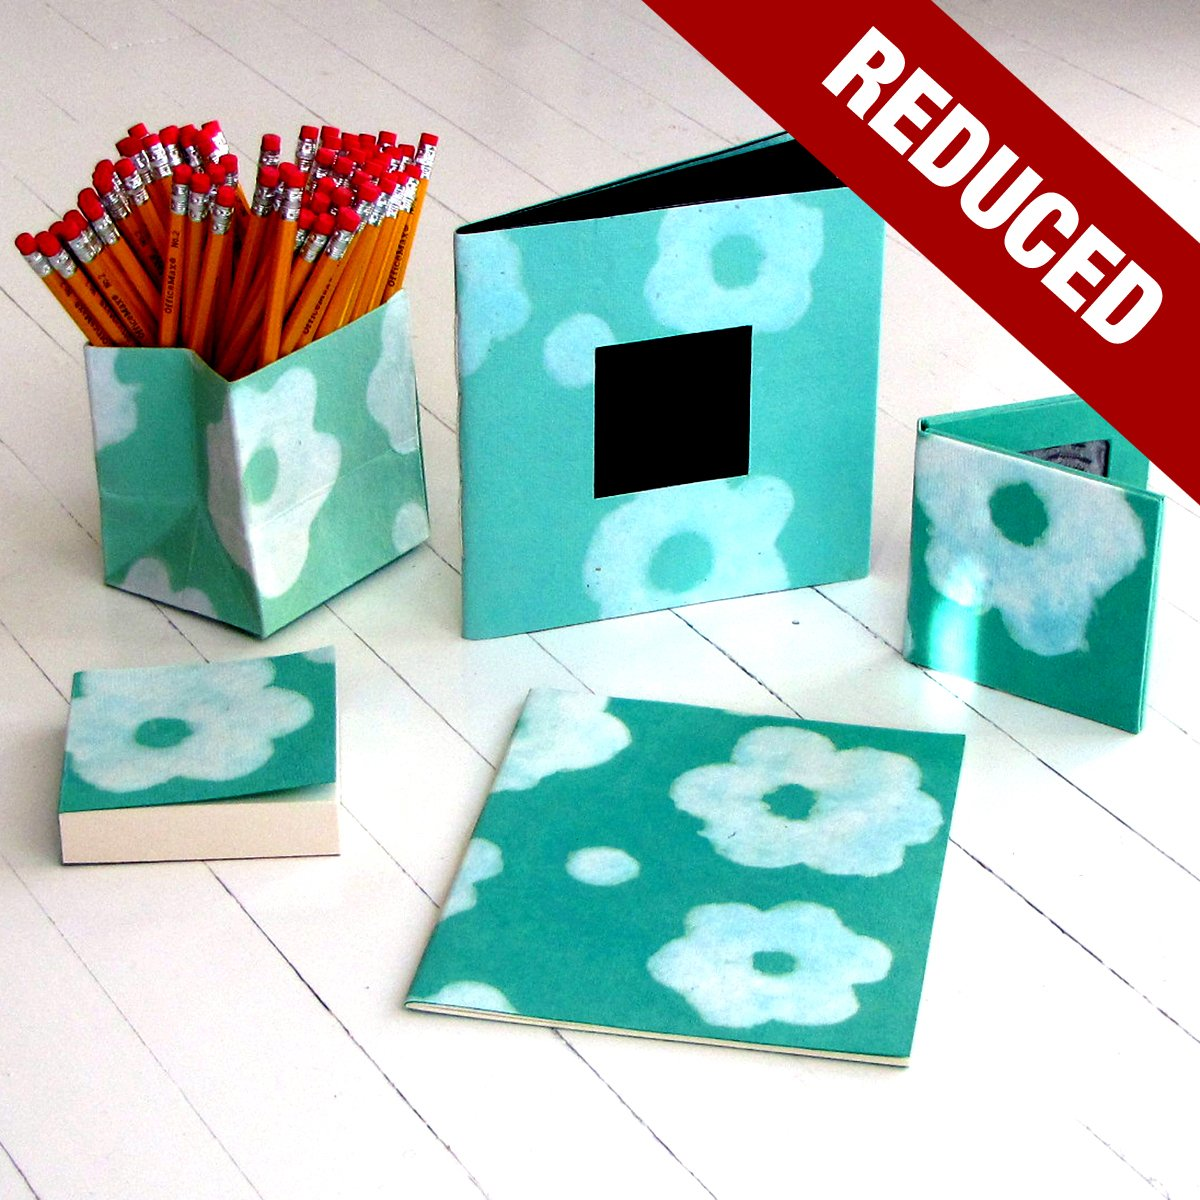 Desk sets aqua 5pc handmade flower power paper accessories present